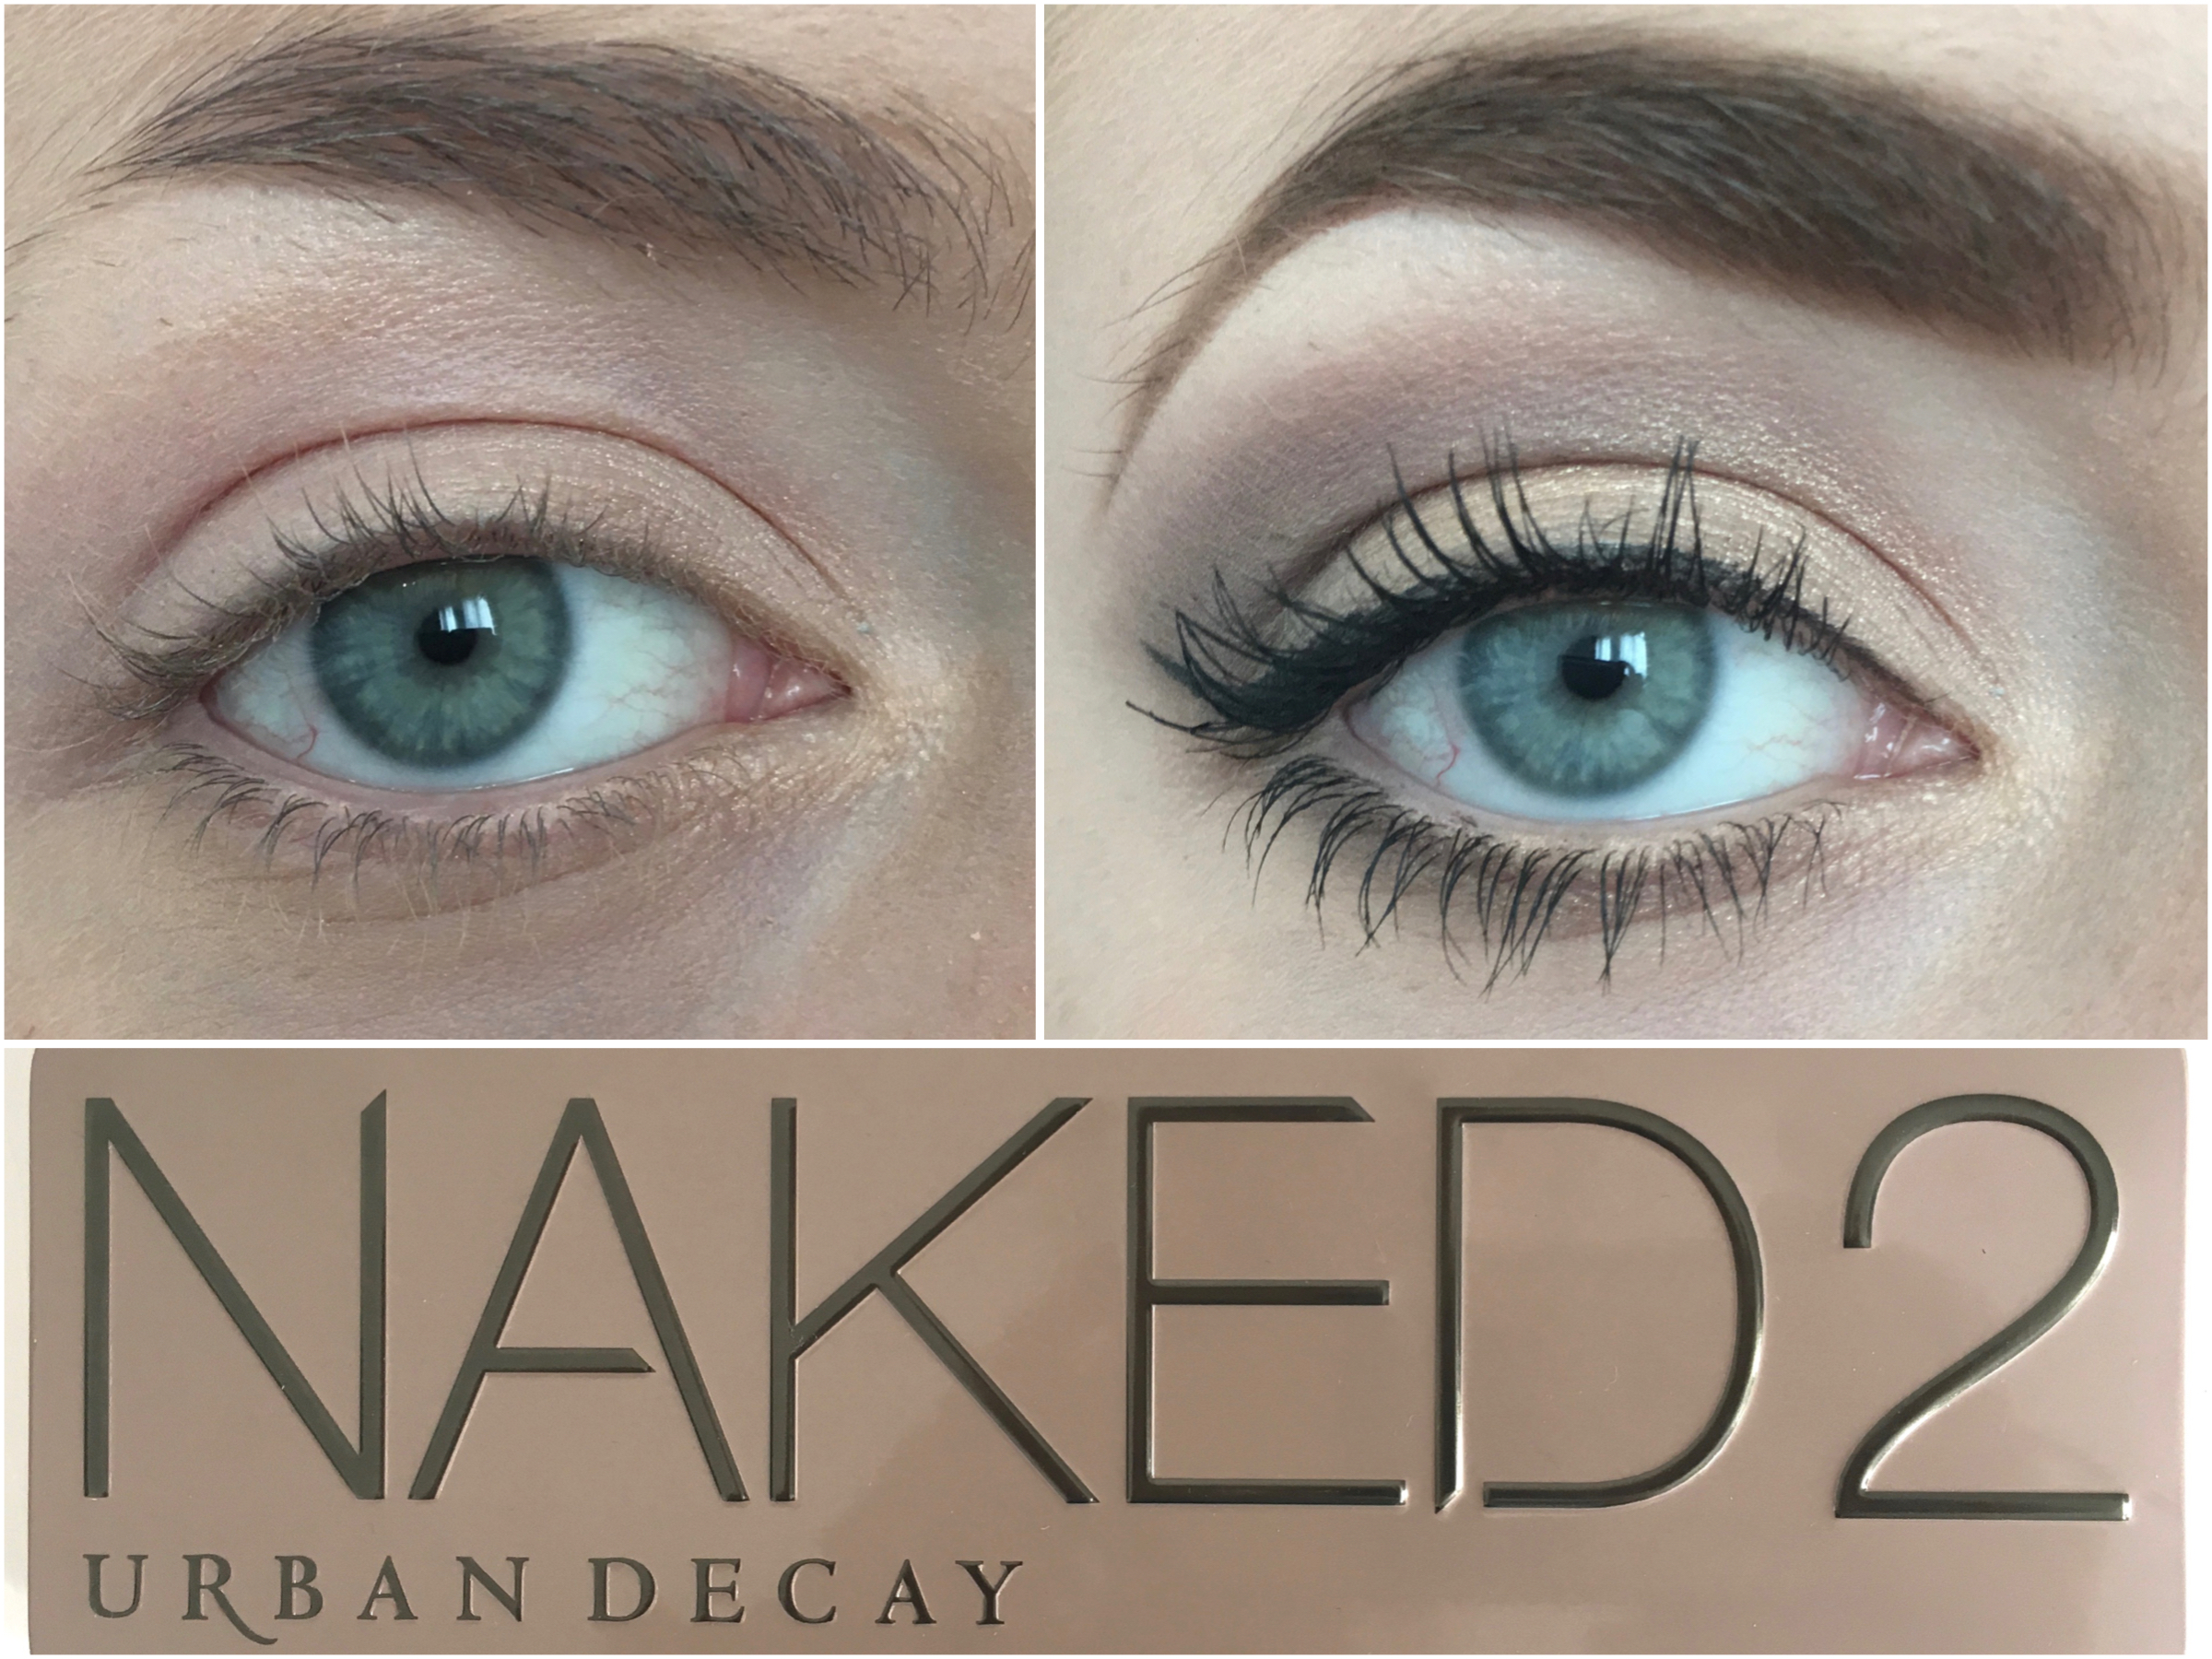 urban decay naked 2 eyeshadow palette review swatches. Black Bedroom Furniture Sets. Home Design Ideas